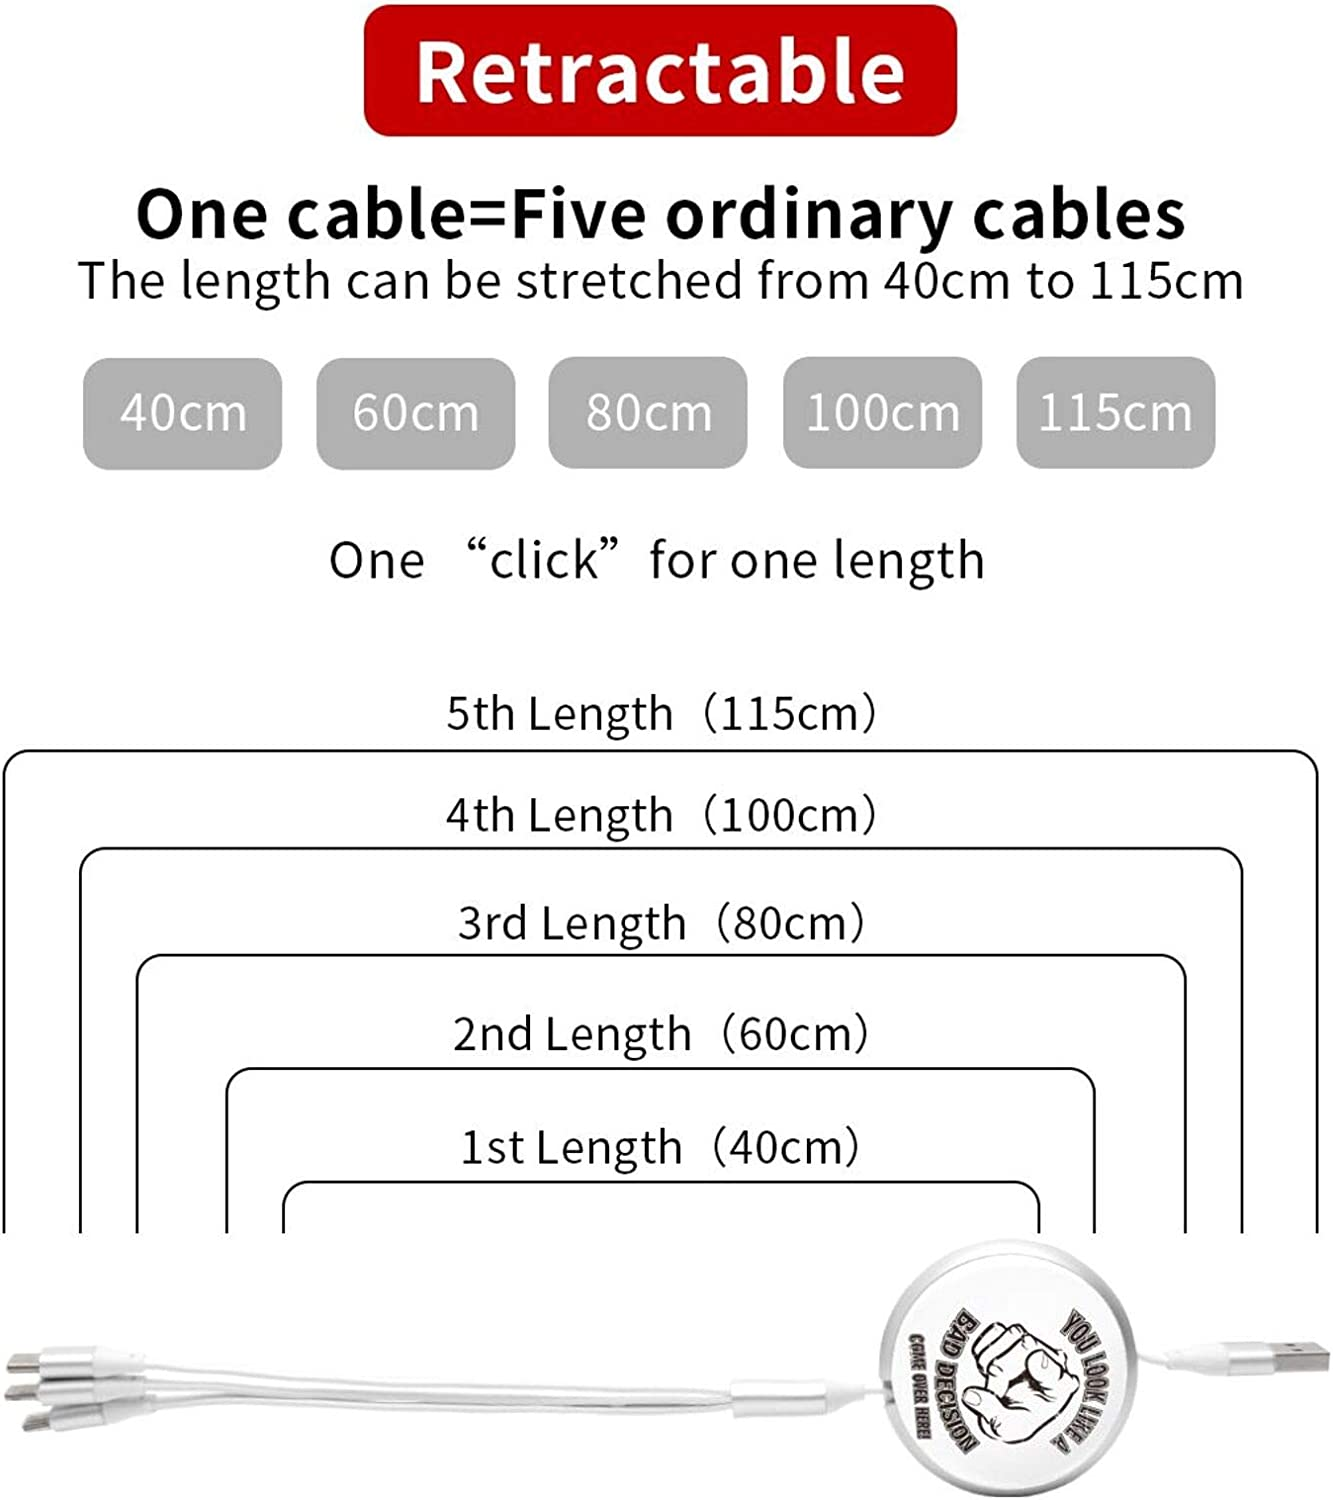 You Look Like A Bad Decision Round White Mobile Phone USB Charging Cable Portable and Practical Three-in-One Retractable Data Cable